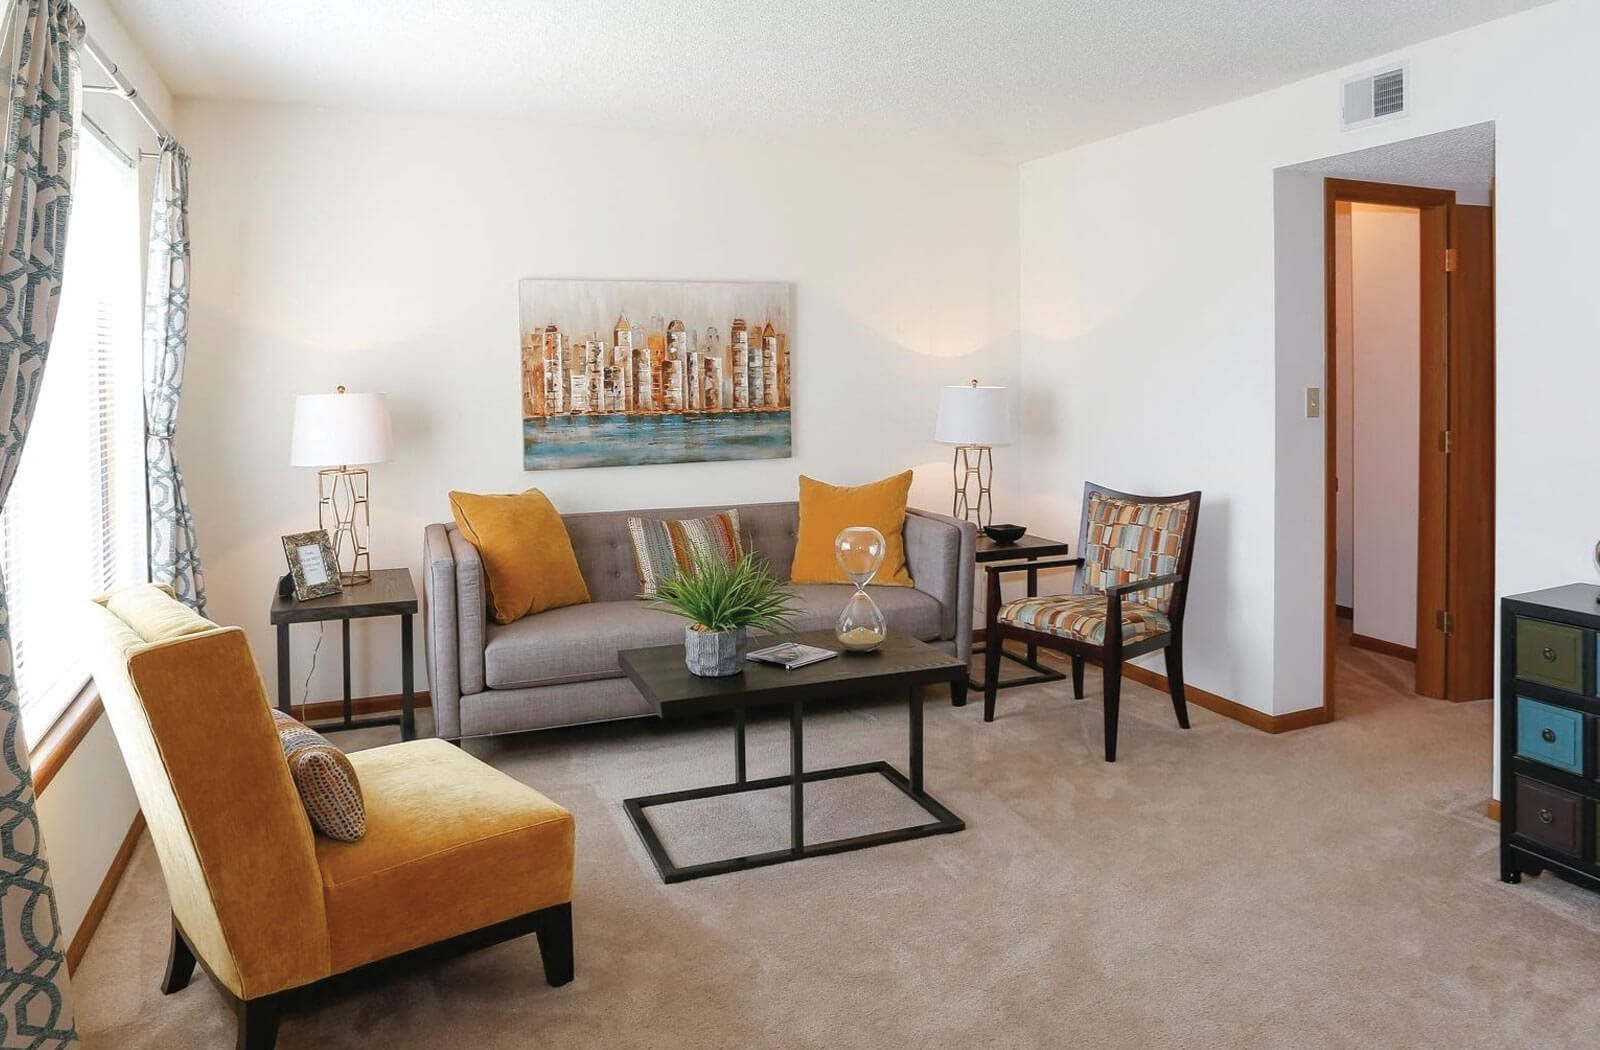 Apartments in Topeka KS for rent